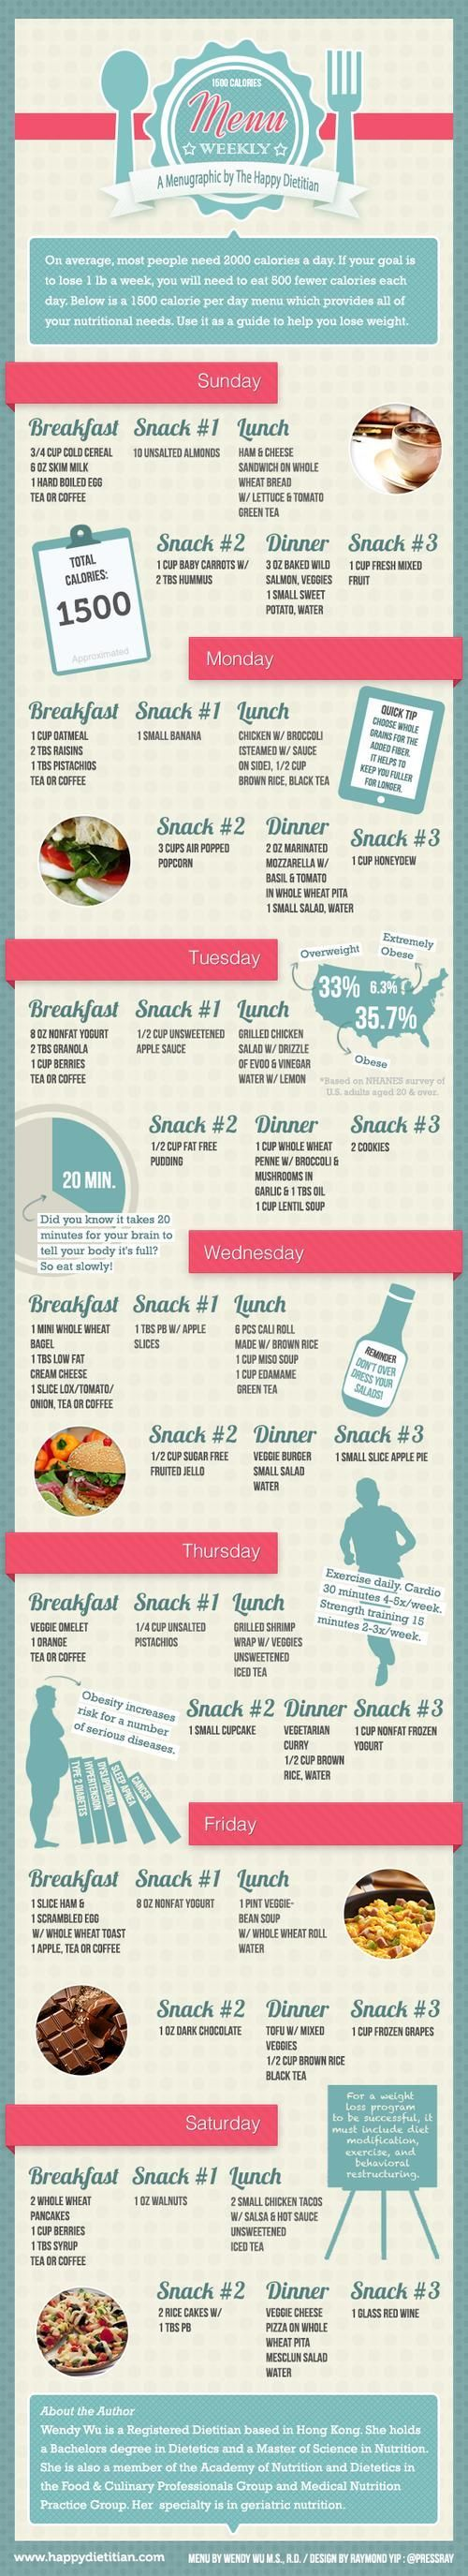 1000+ ideas about Diet Menu Plans on Pinterest | Mediterranean Diet Menu Plan, Egg Fast and Diet ...